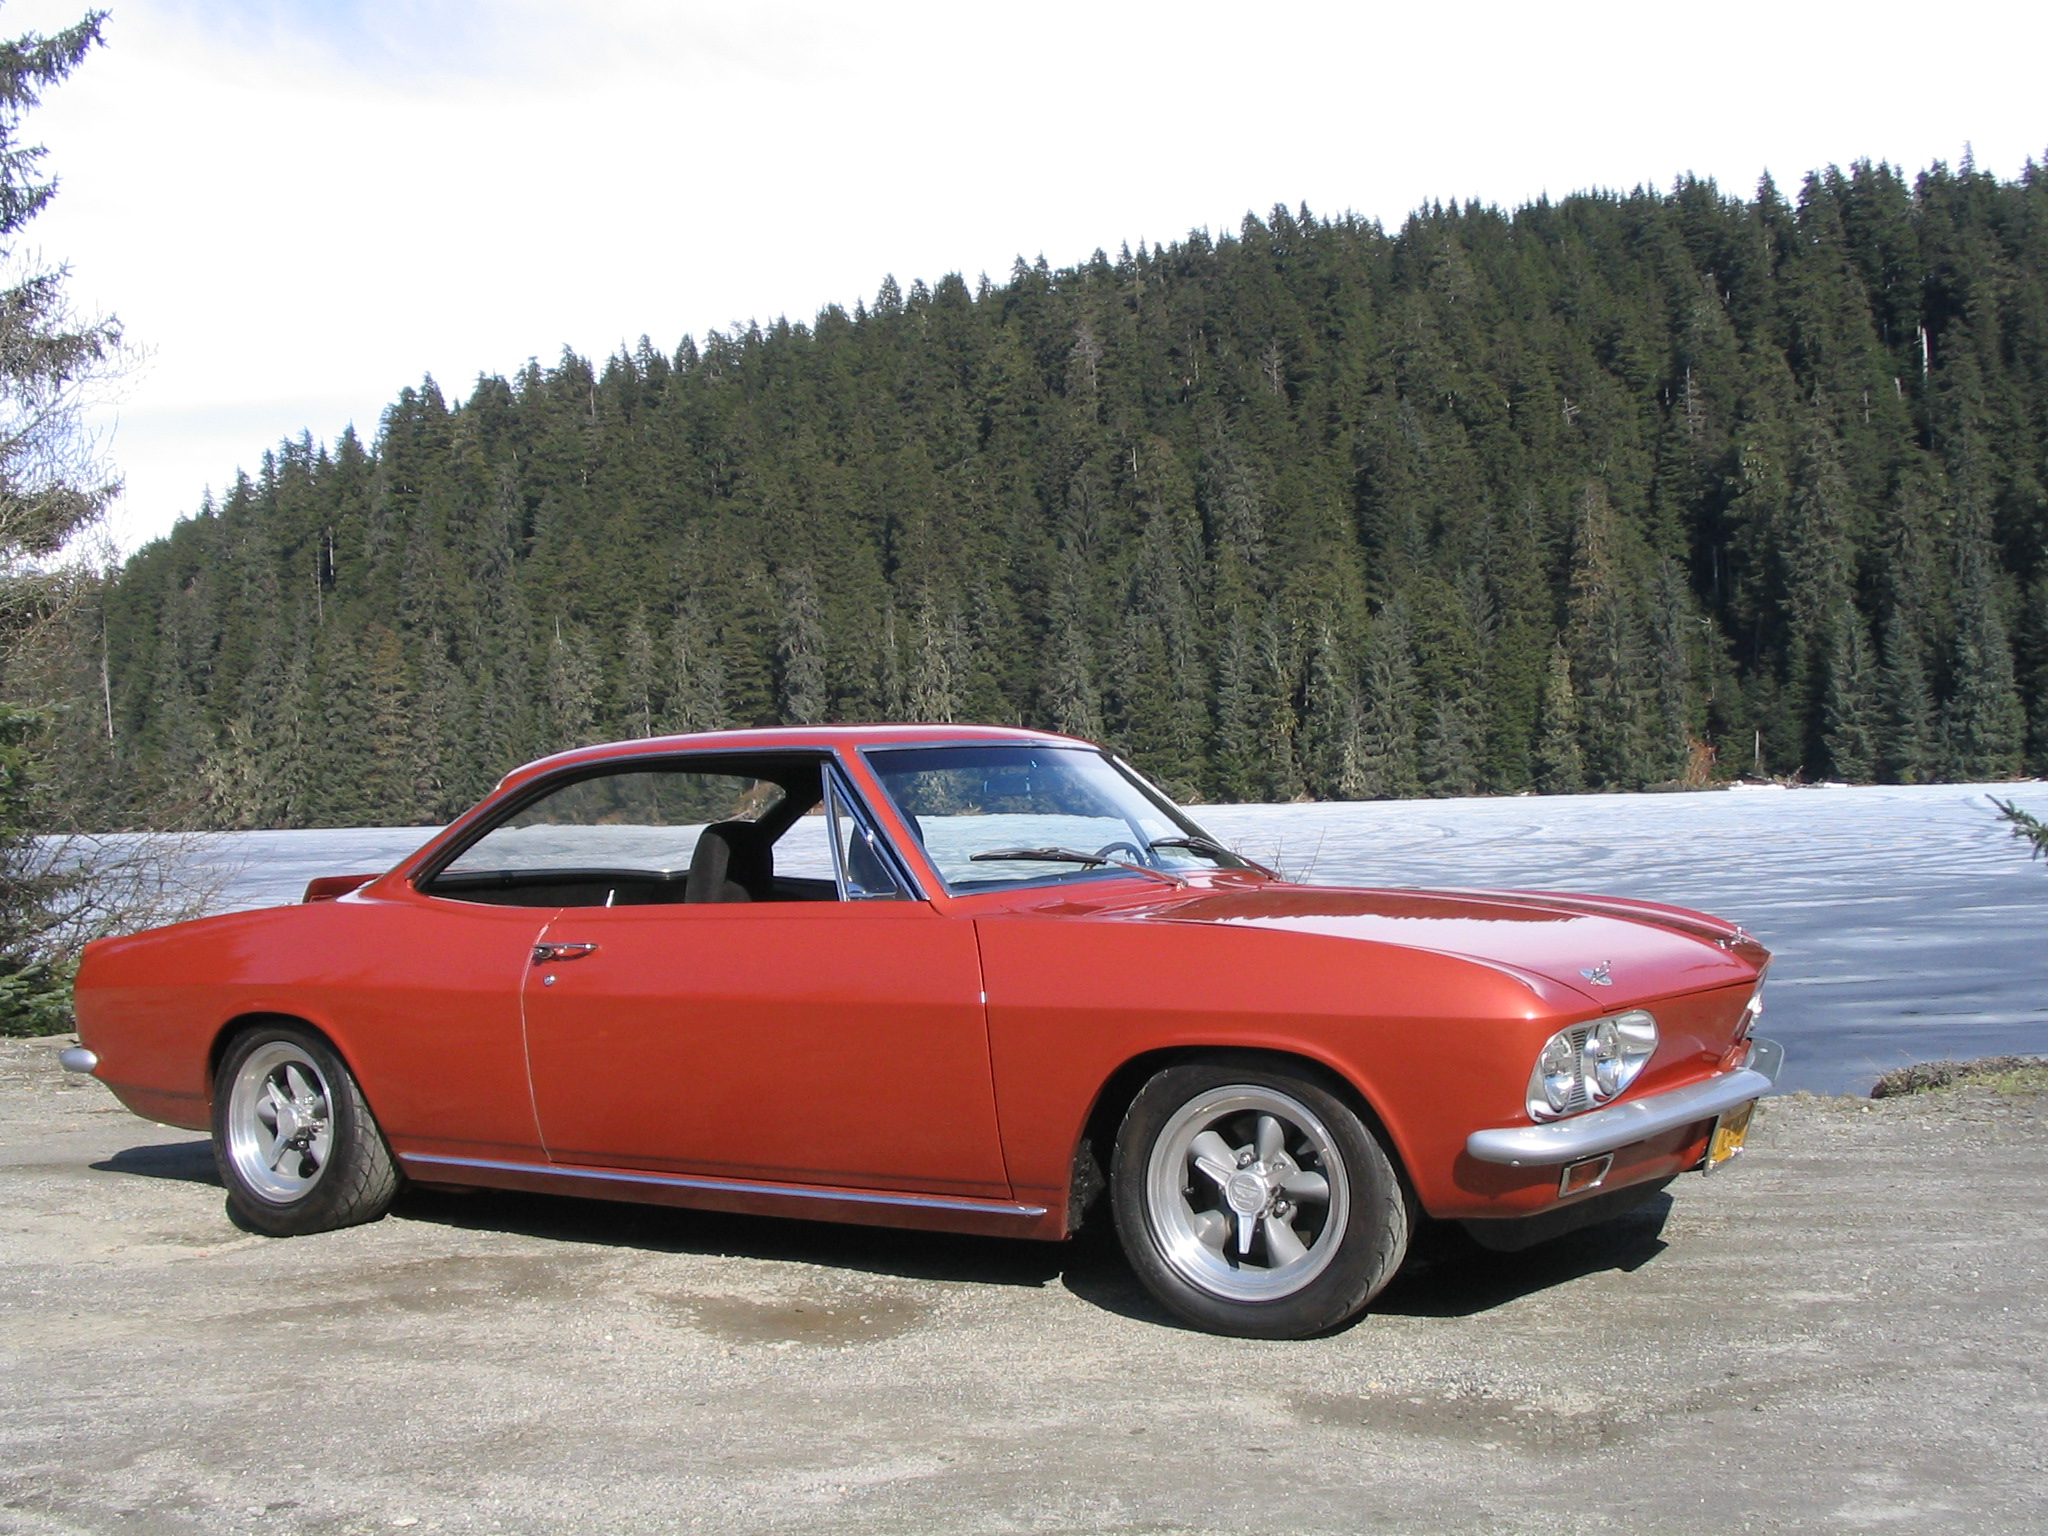 Chevrolet corvair photo - 1